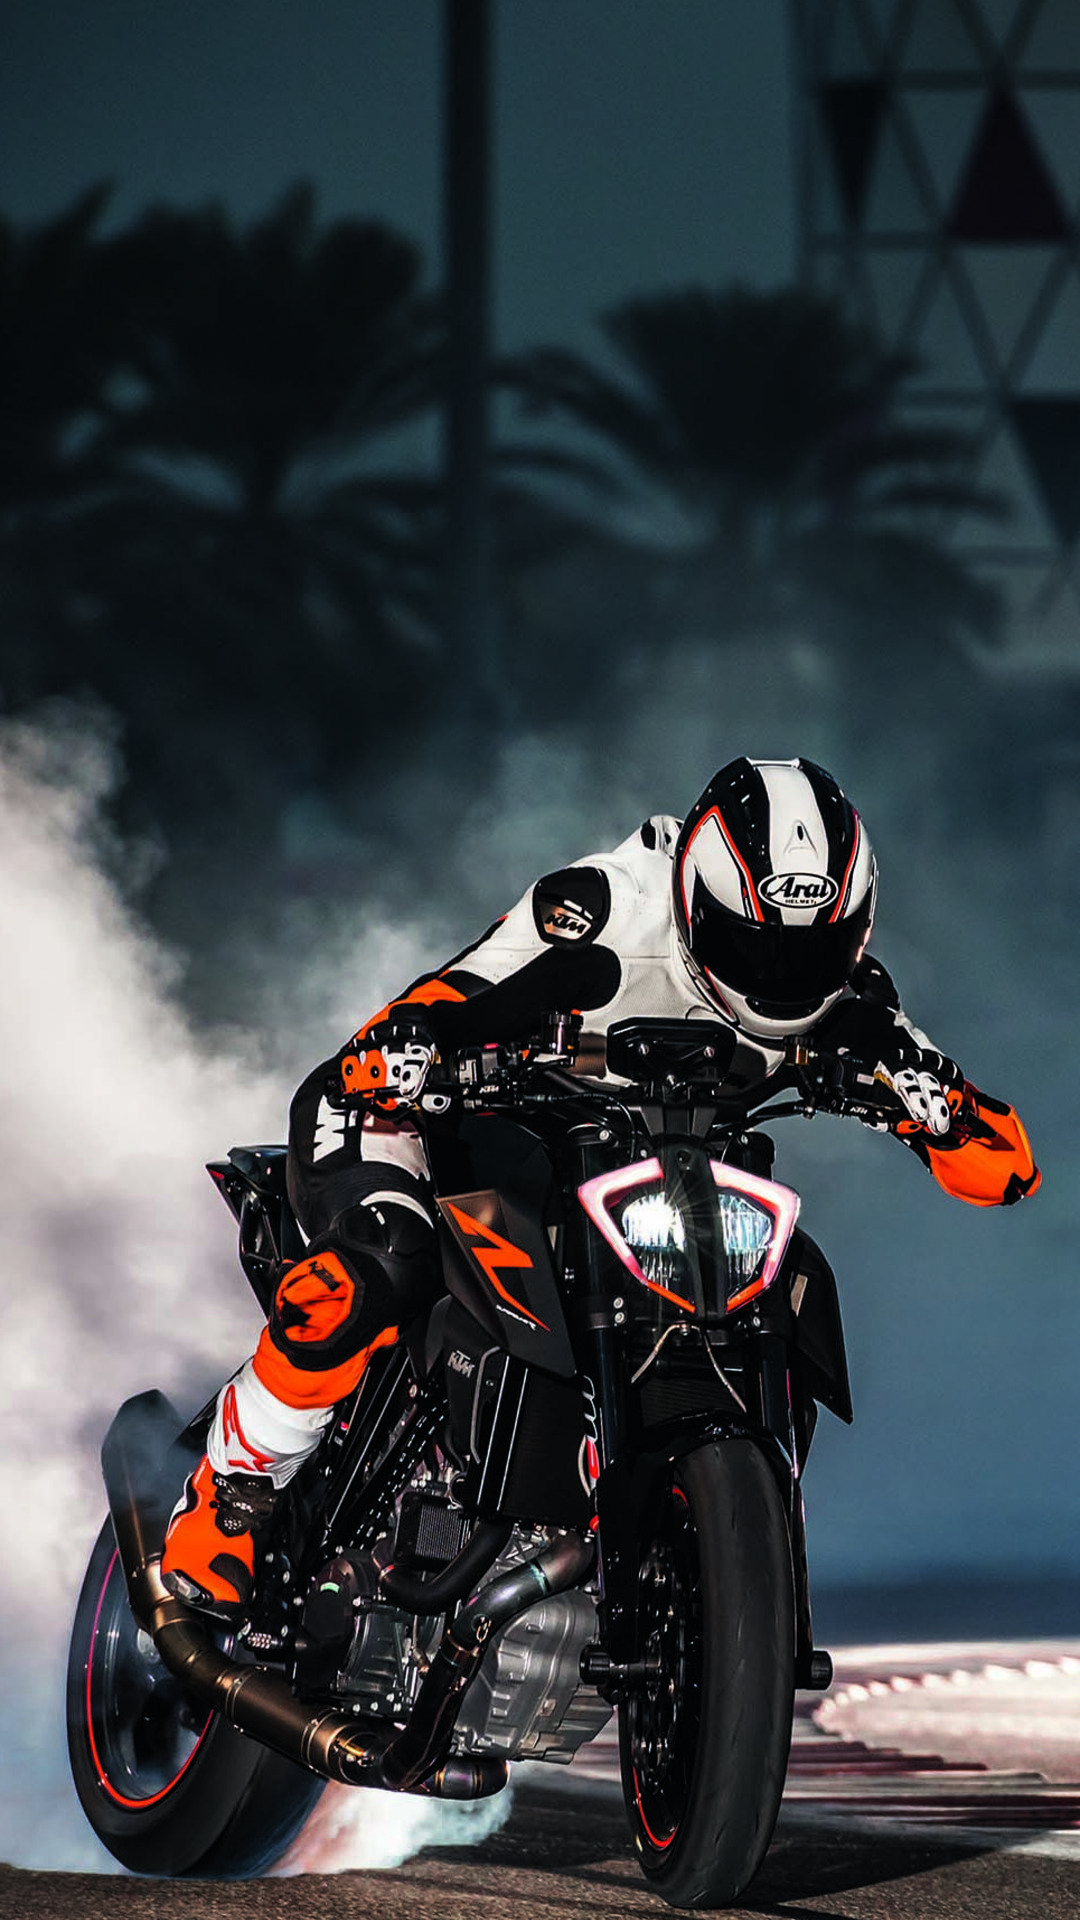 1080x1920 KTM 1290 Super Duke R - High quality htc one wallpapers and abstract  backgrounds designed by the best and creative artists in the world.